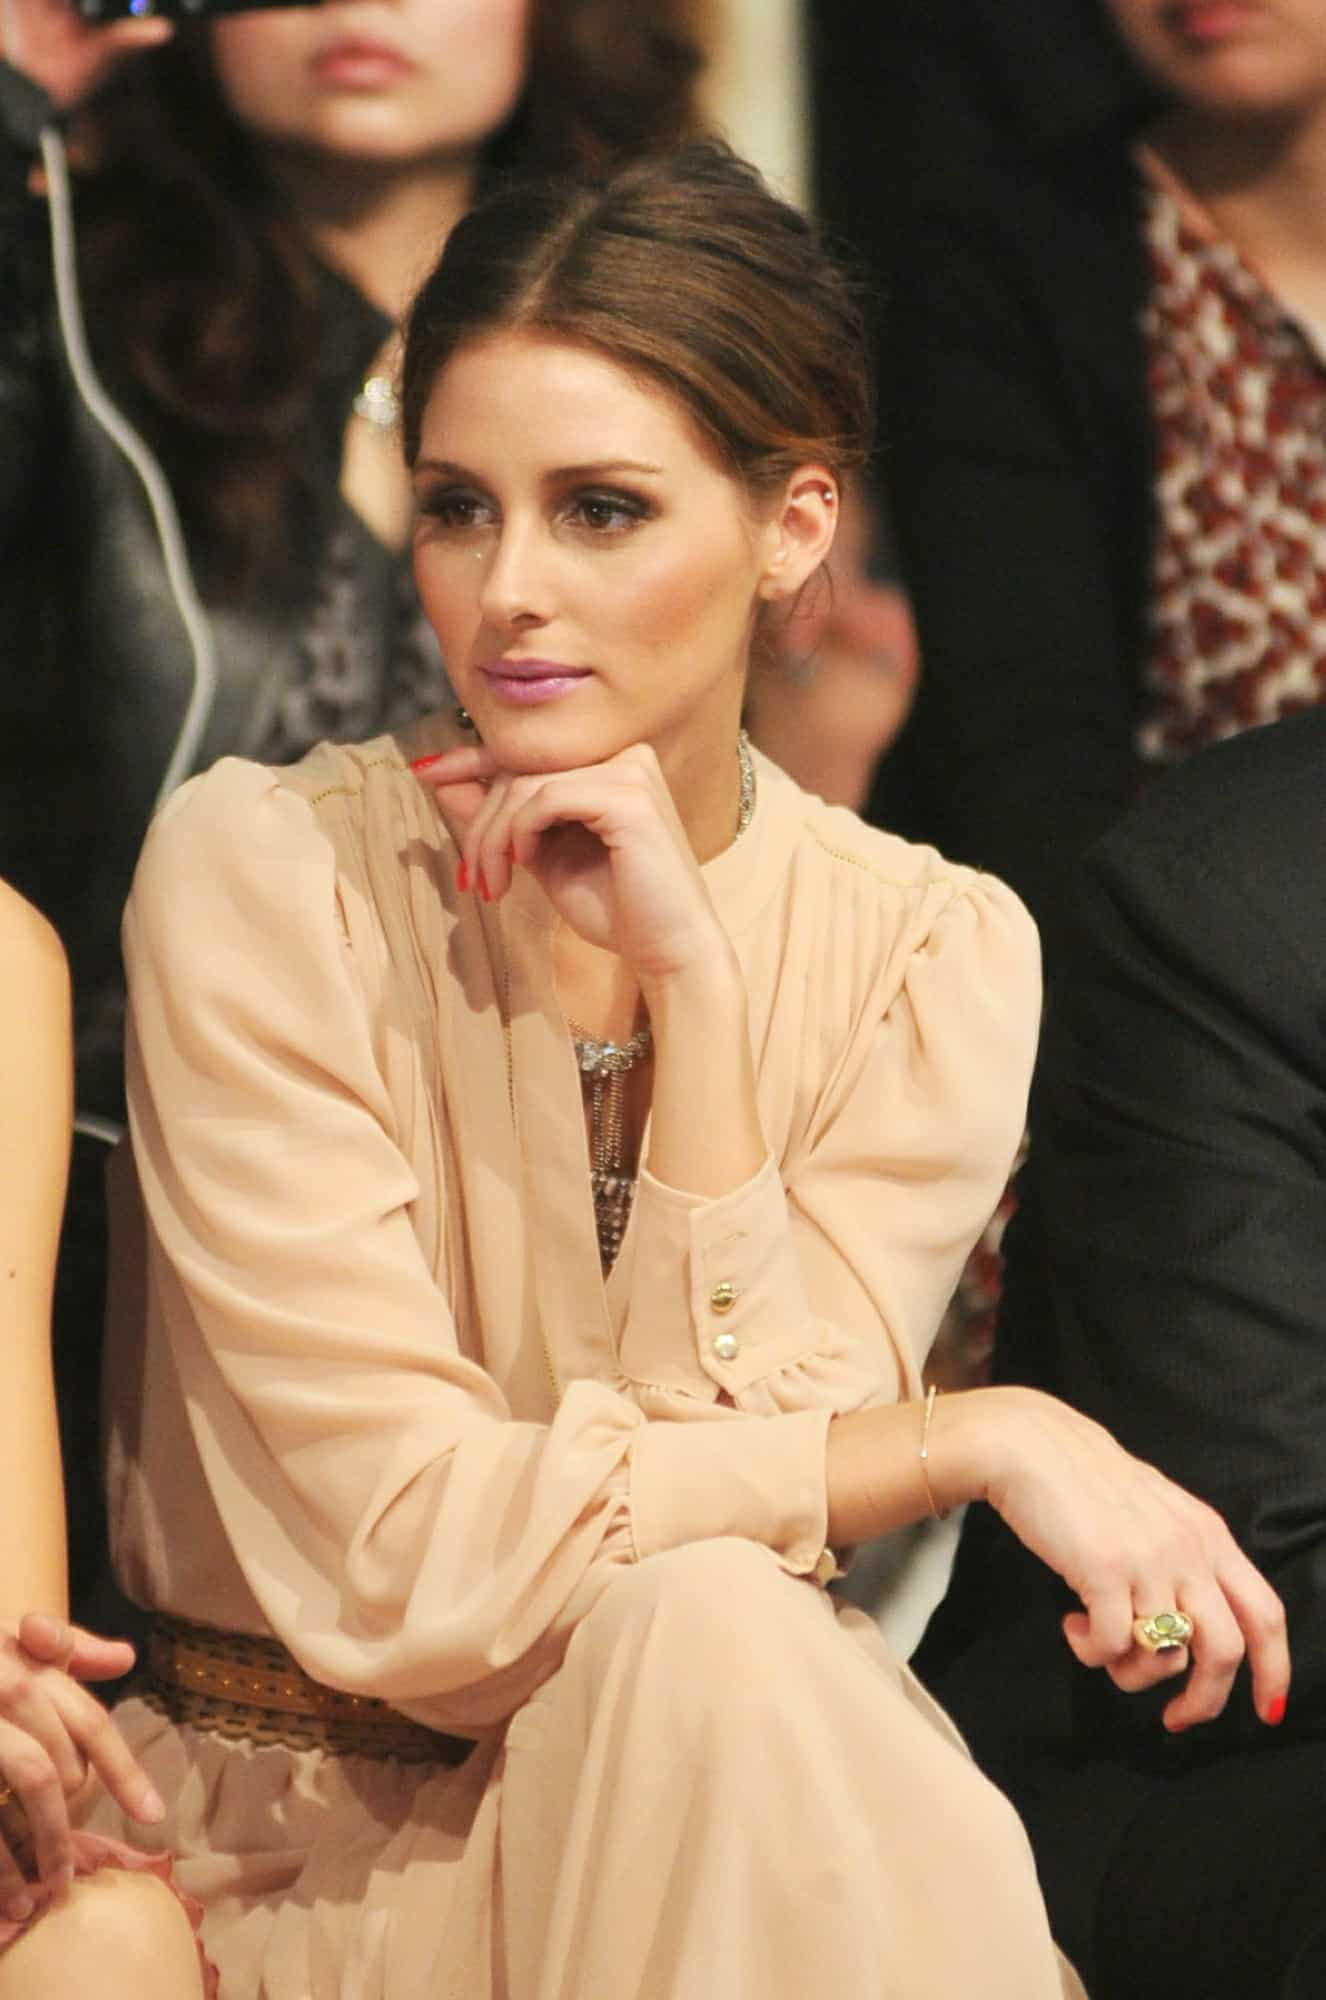 Olivia-palermo-Christmas-inpired-top